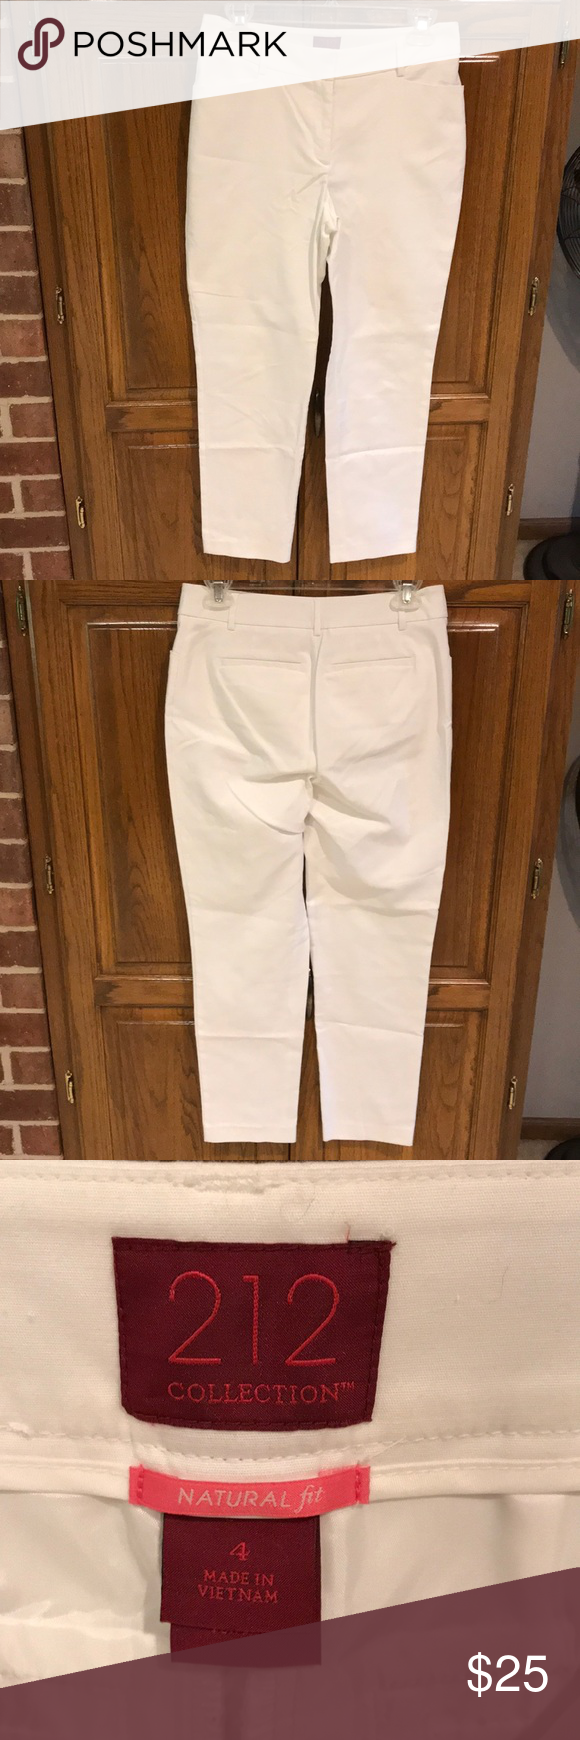 "212 Collection Natural Fit white slacks. 212 Collection Natural fit white slacks.  Like new condition!  27"" inseam 212 Collection Pants Ankle & Cropped #whiteslacks"